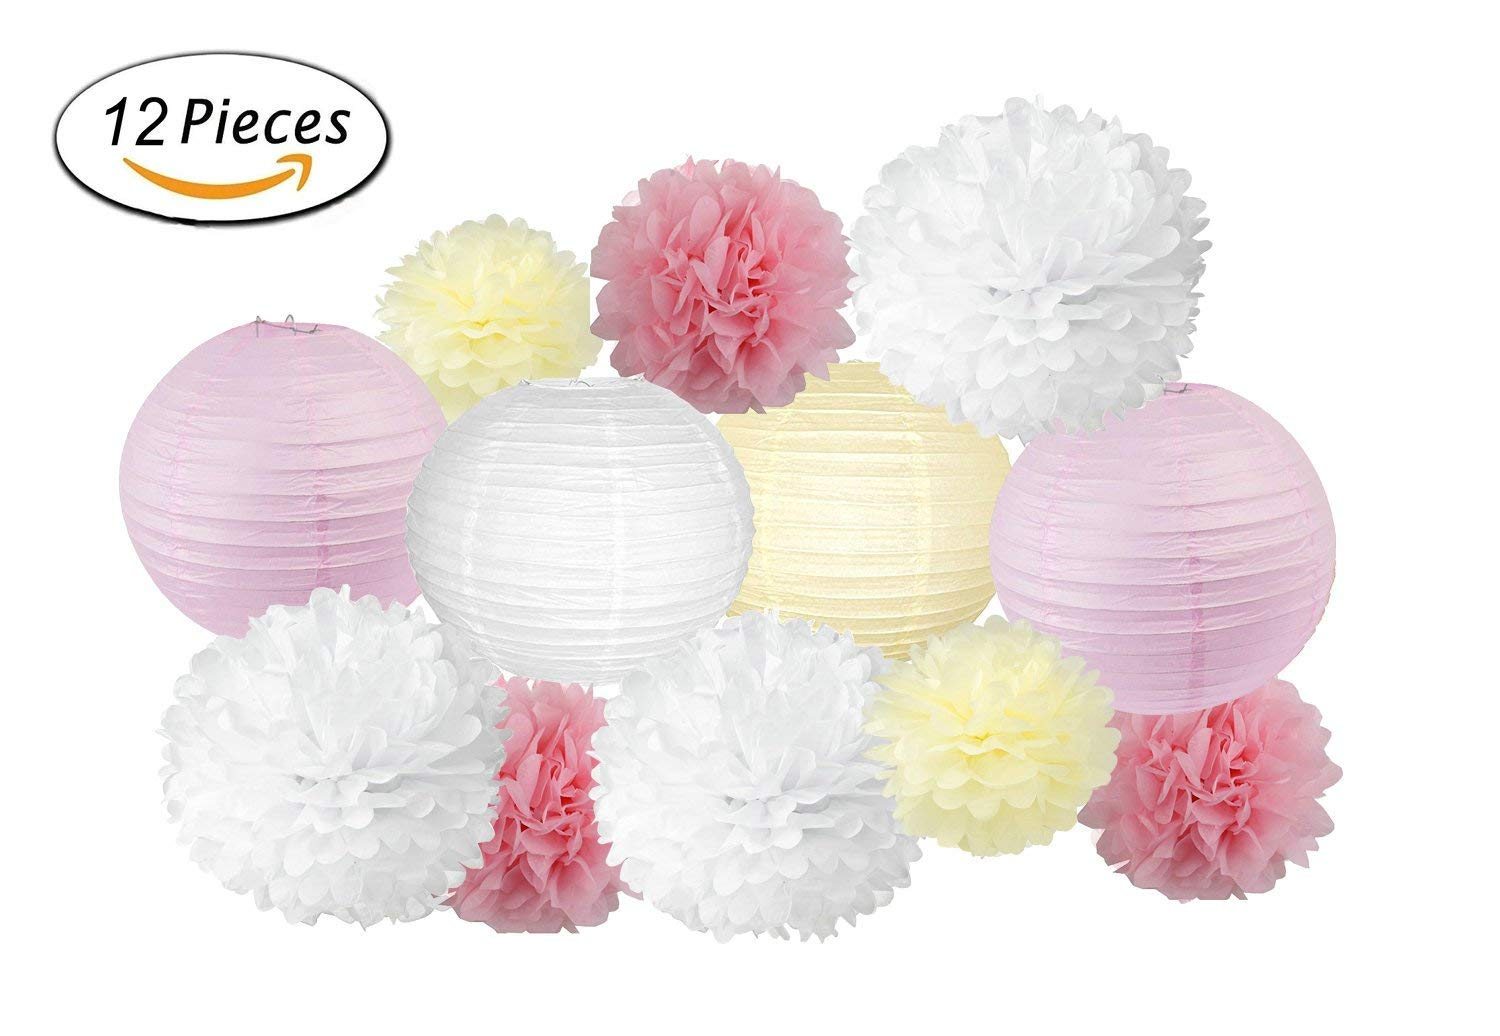 Party Decorations: Larger 12-inch Paper Lantern and Pom Poms – 12 pcs Pink, White, Ivory. Perfect for Baby Showers, Weddings, and Birthdays